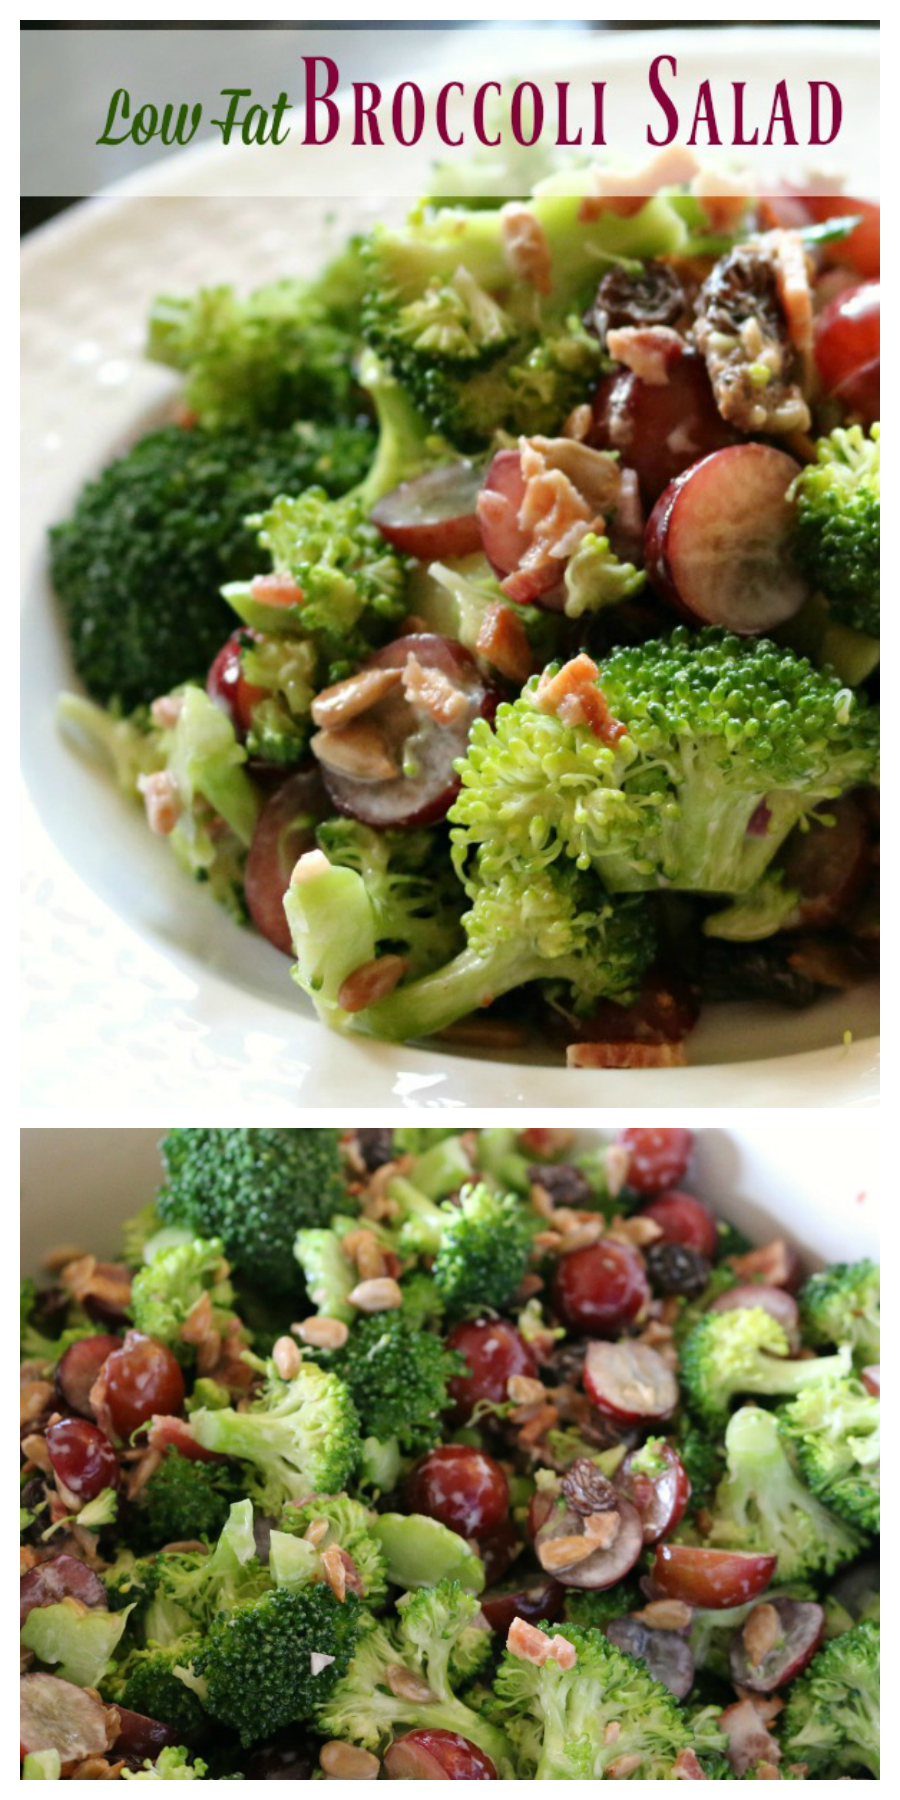 Recipe for Low Fat Broccoli Salad with Grapes and Bacon - perfect for the holidays!  CeceliasGoodStuff.com | Good Food for Good People